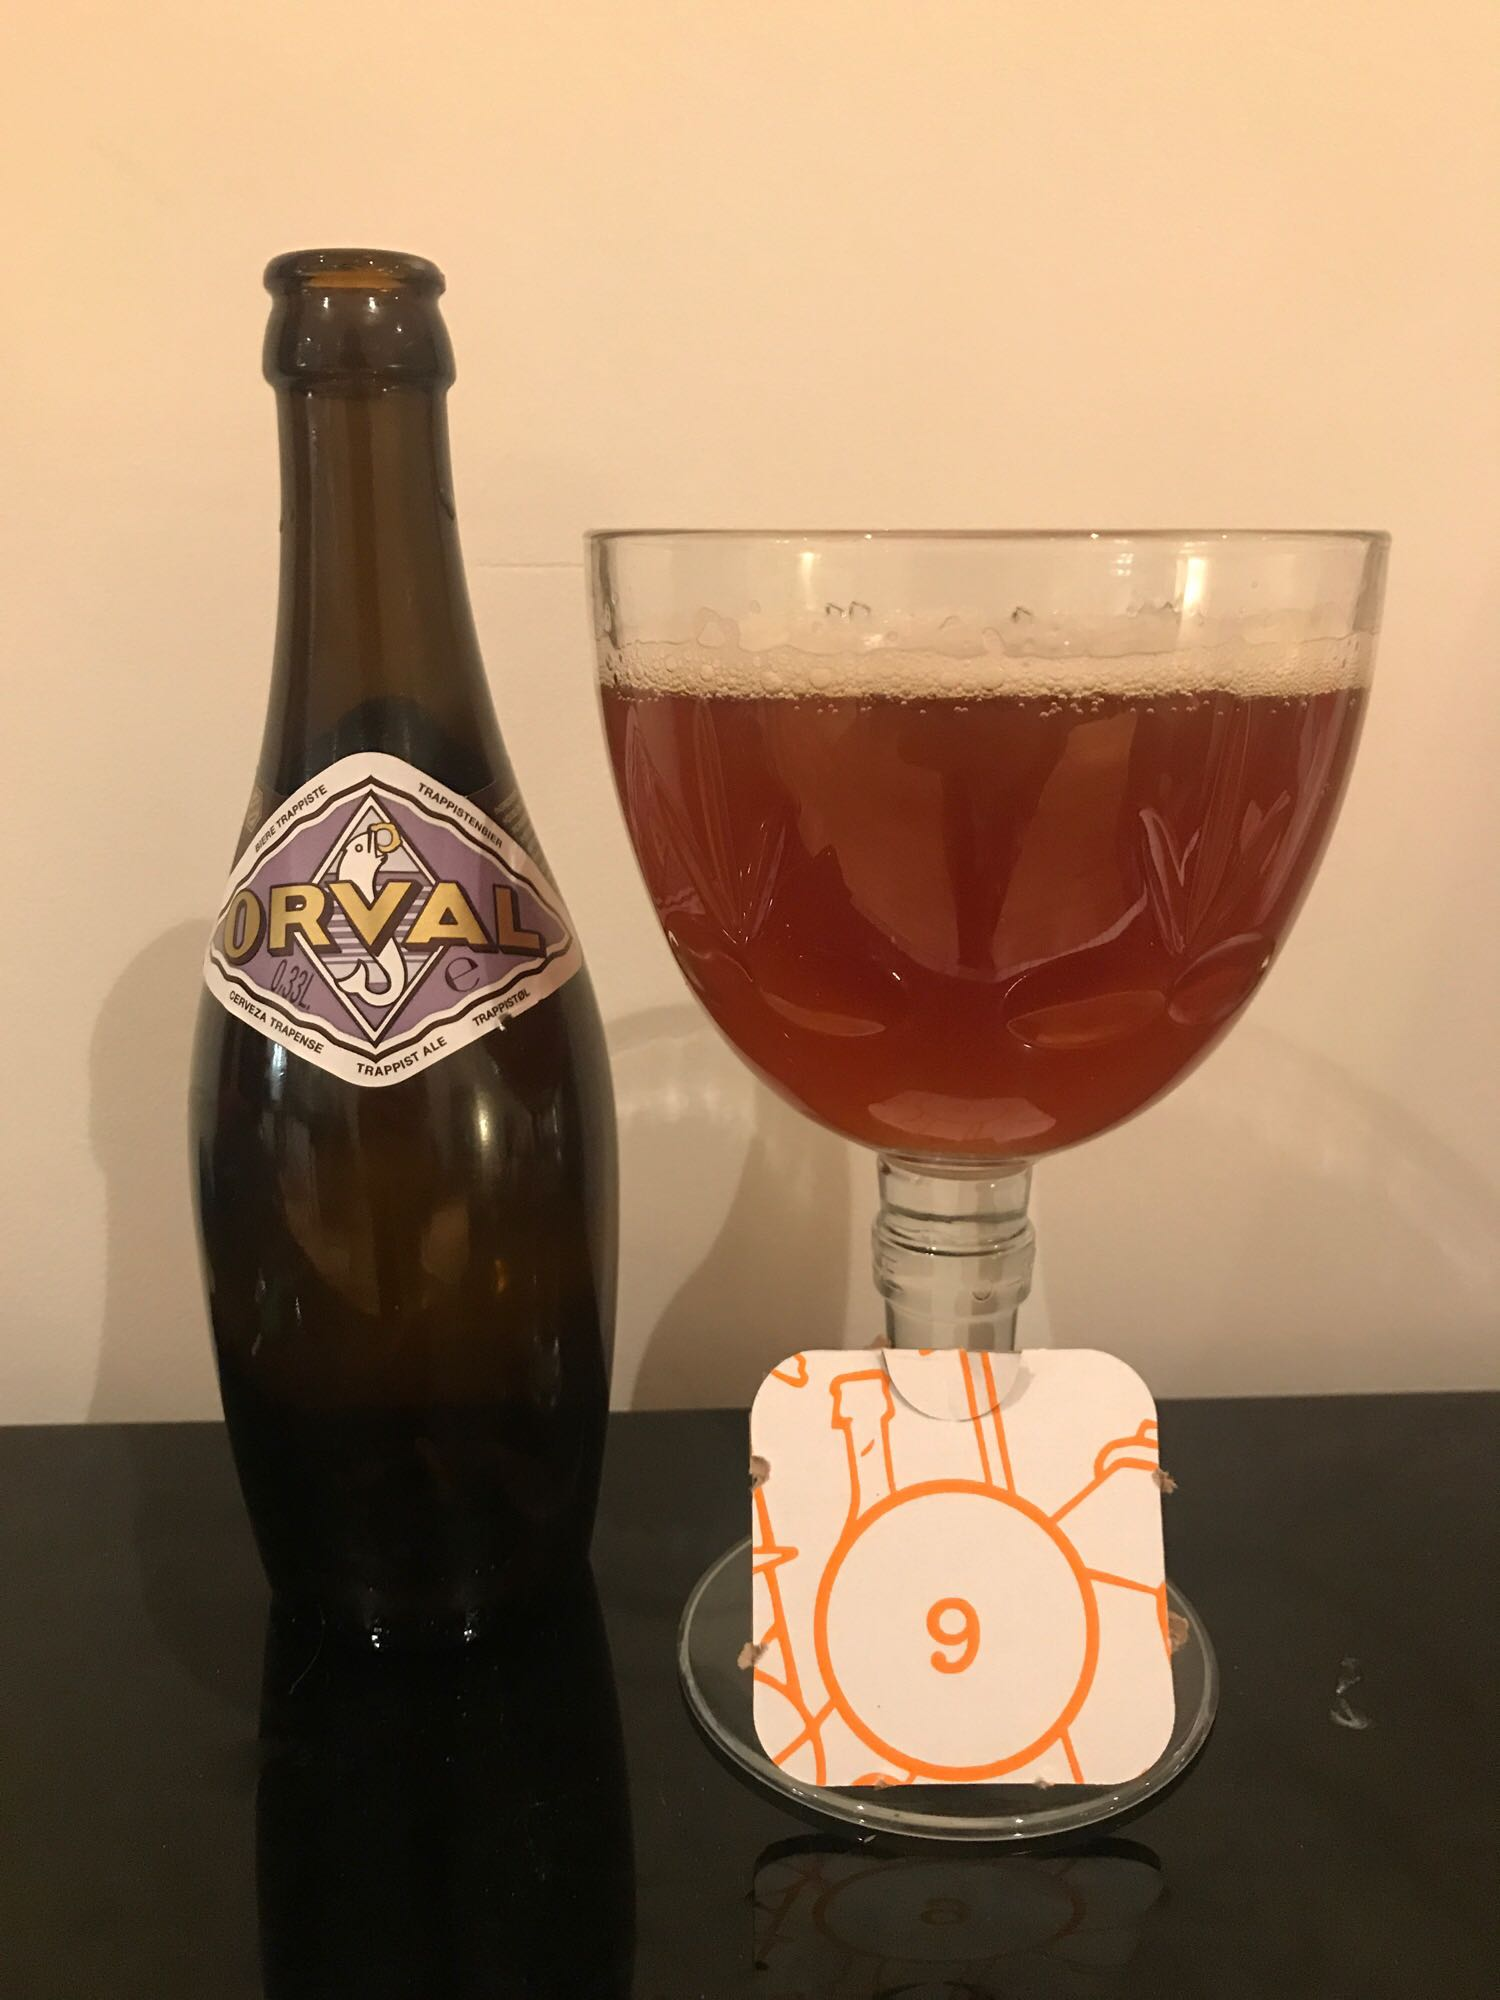 Day Nine: Orval - Belgian Pale Ale 6.2% // Brasserie d'Orval - I first had this beer back in 2014 in Bruges (it's a fucking fairytale town, isn't it!) and remember enjoying it. I've read many a thing about aging this beer and the taste developing differently over time with varying opinions that it's best 6 months, 12 months, 18 months or even 2 years after it's been brewed. This one was brewed this year and, whilst I would've liked to have aged it, the advent calendar demanded it be drunk. I dutifully obliged but sort of wish I hadn't. It was fine, not quite as good as I remembered, but think it may have benefited from aging a little longer.It's your typical belgian pale ale with some added funk and it does taste very fresh but the flavours are quite muted. Ah well, I will definitely pick up a bottle or two to experiment with aging.